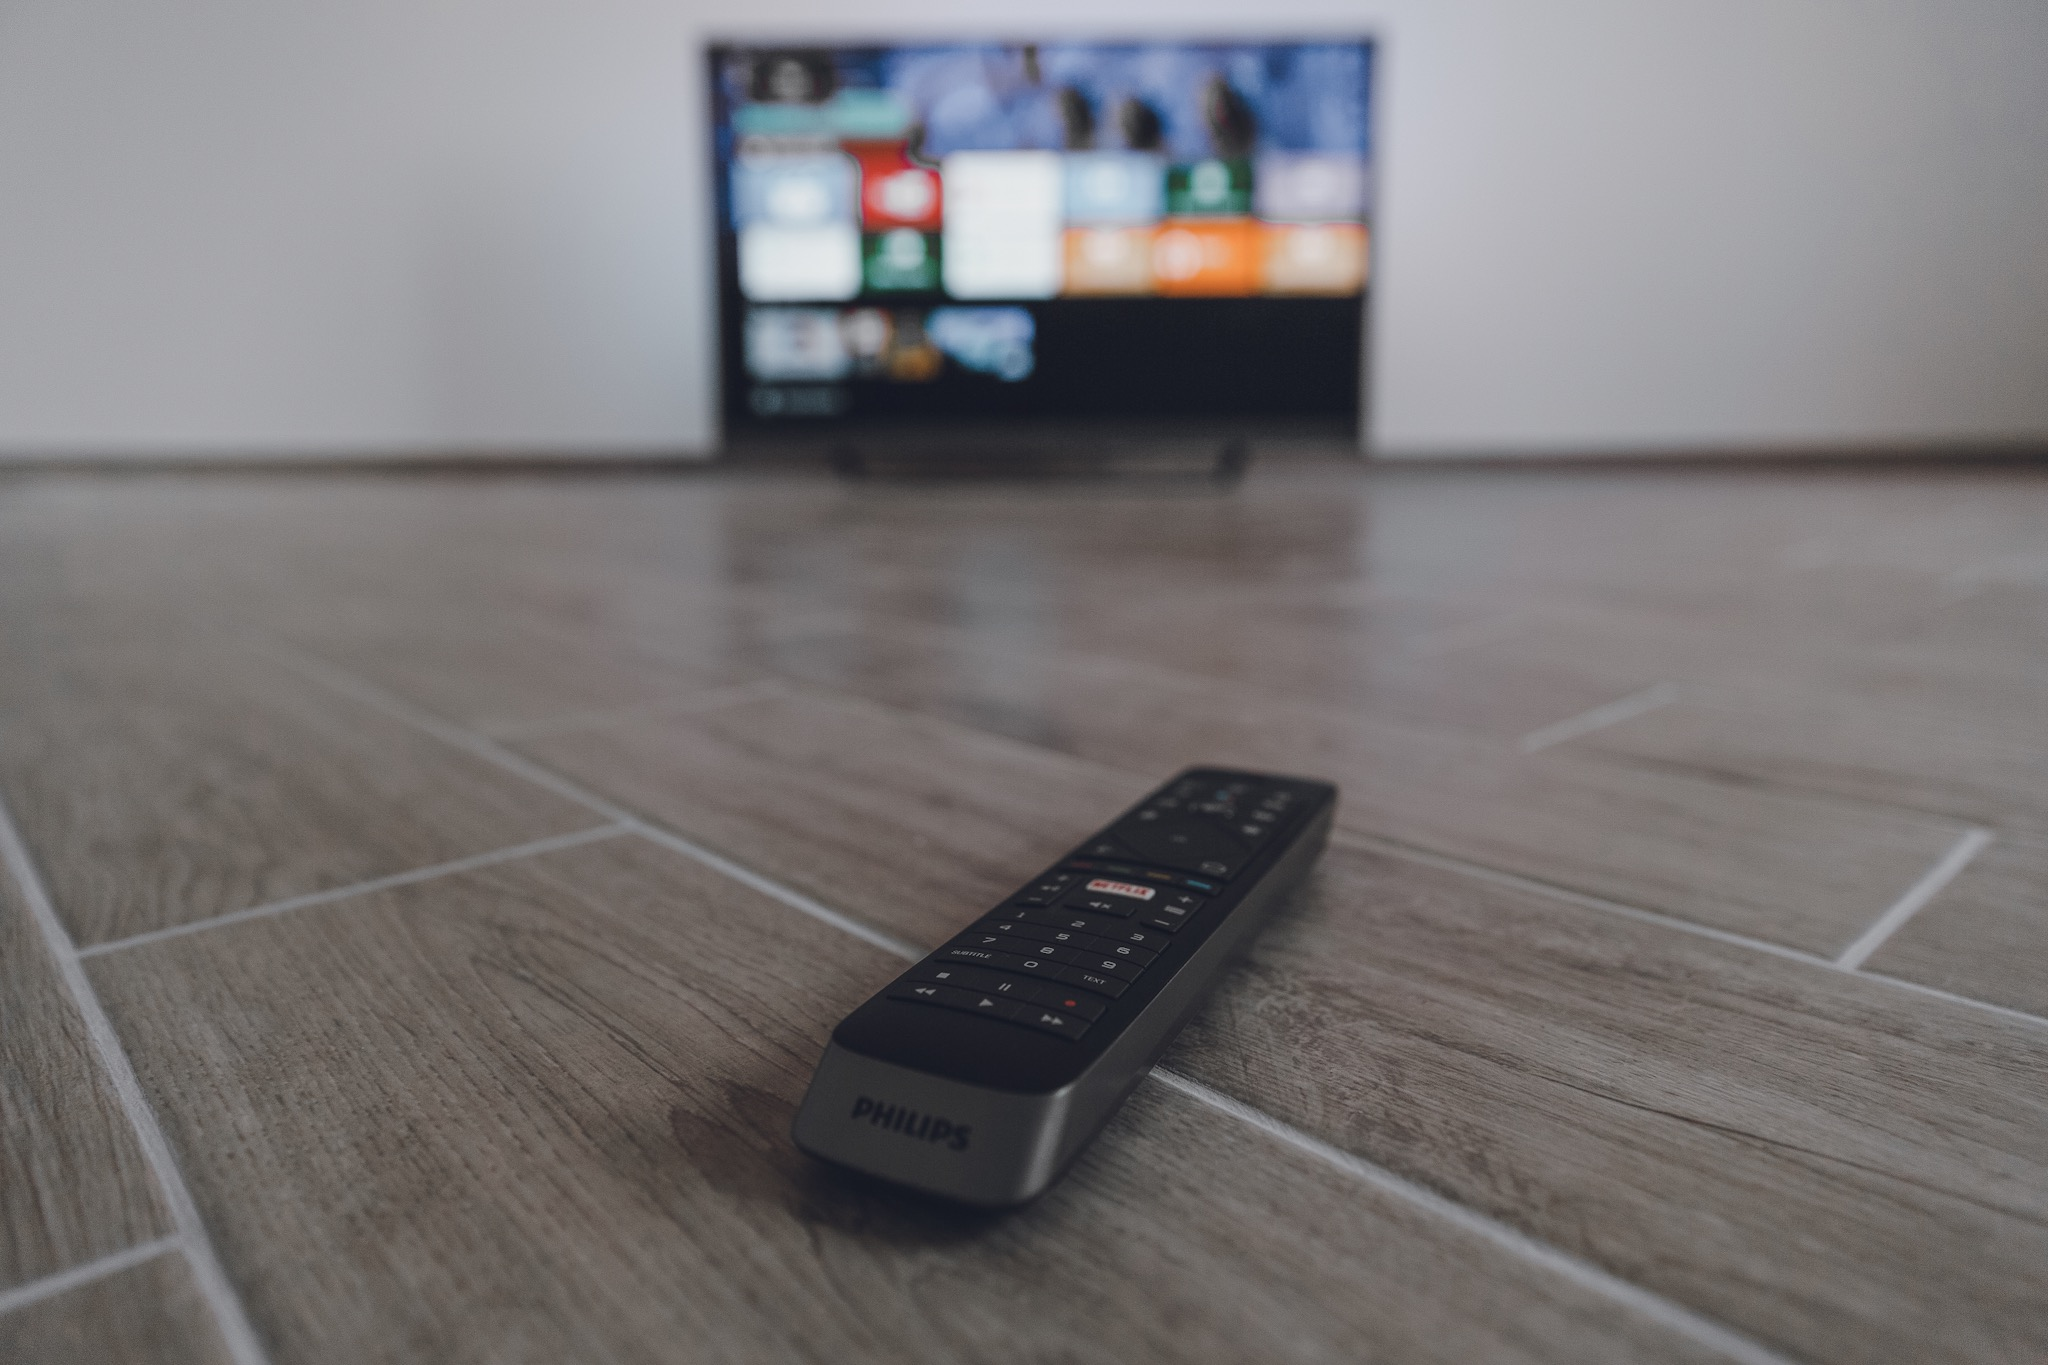 Philips smart tv review